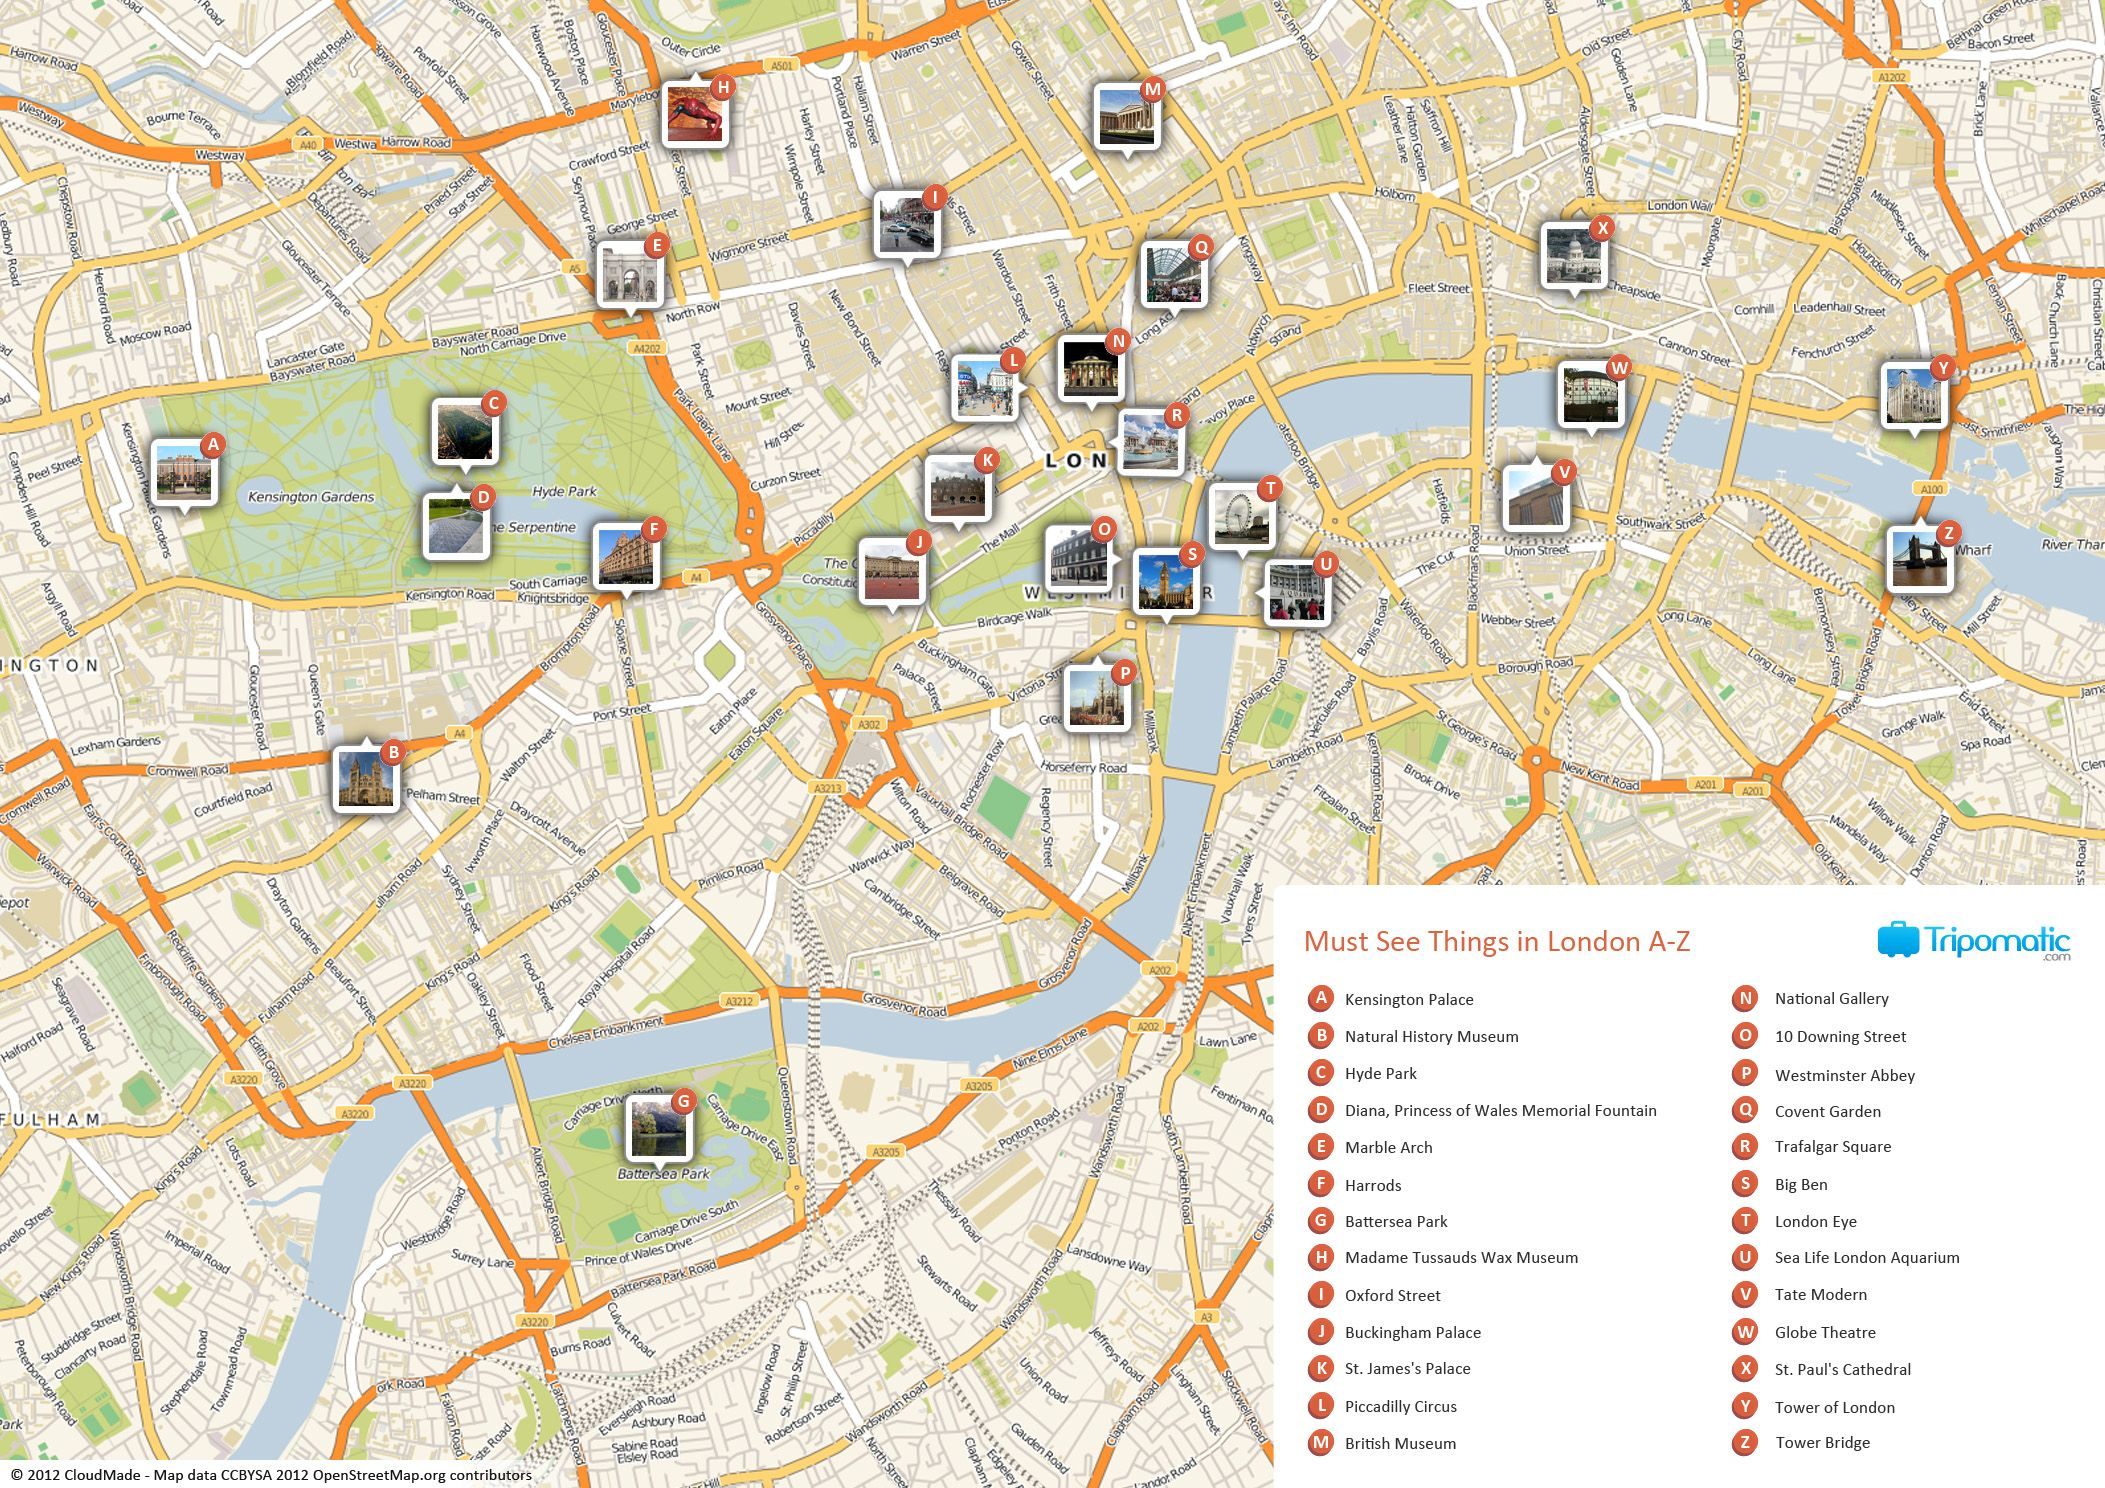 Map Of London With Must See Sights And Attractions. Free Printable - Printable Map Of London